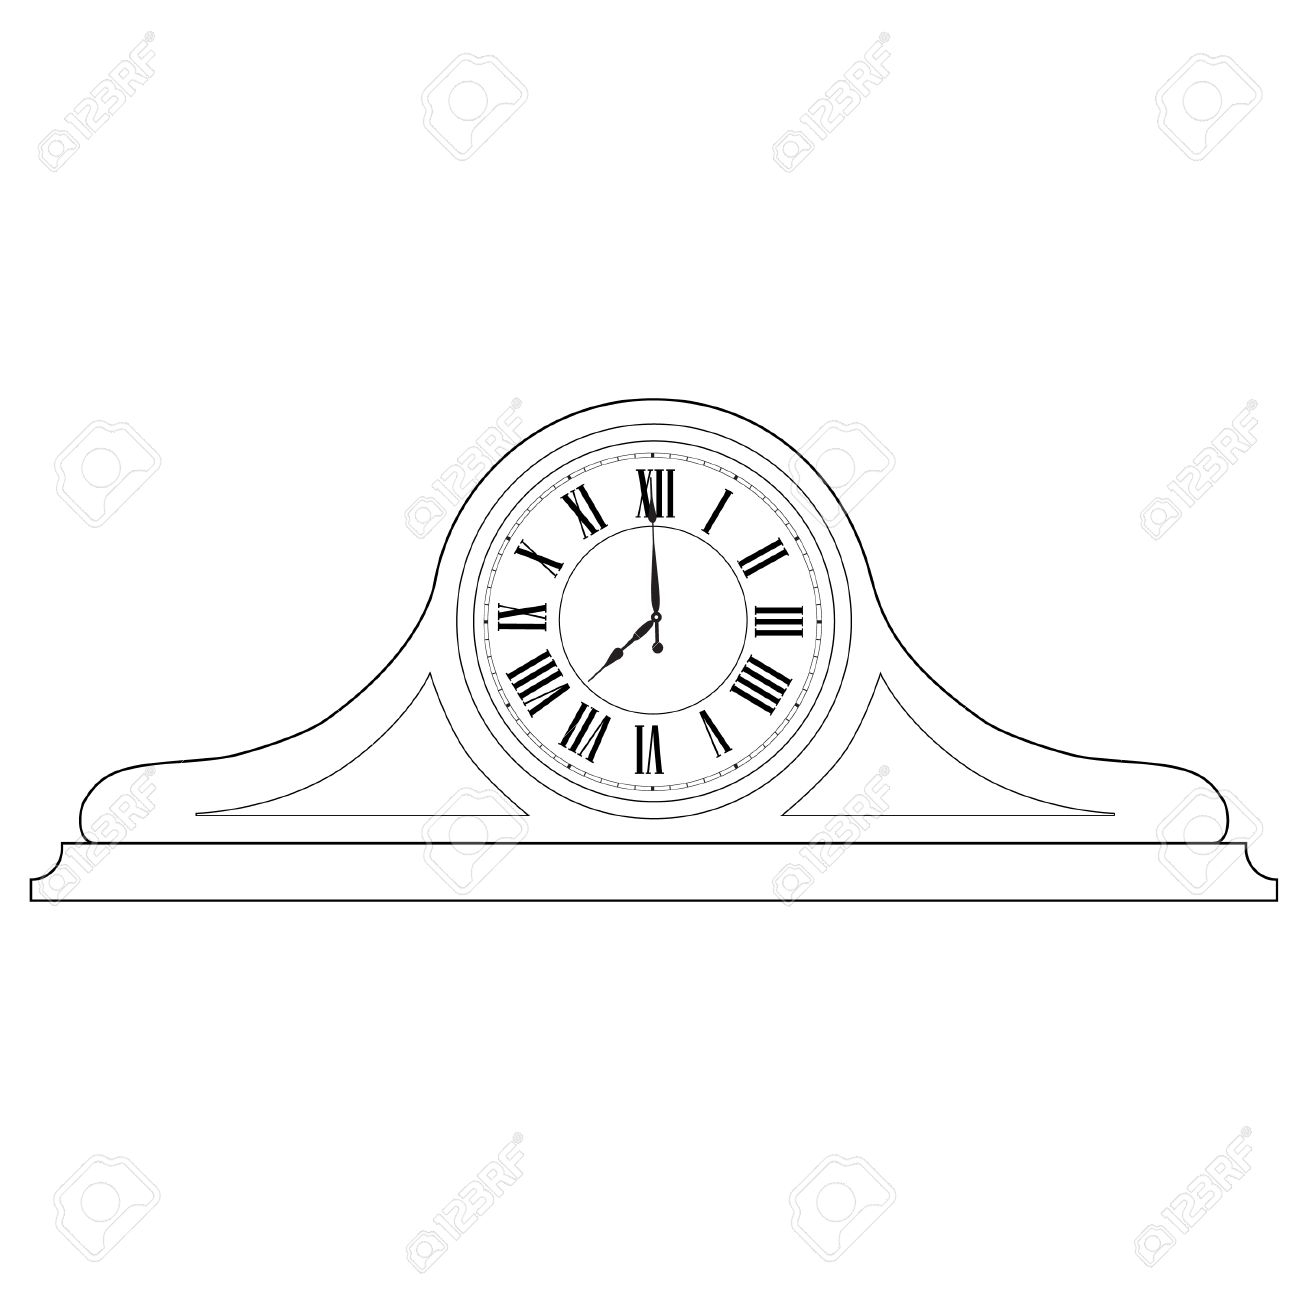 1300x1300 Outline Drawing Of Old Table Clock With Roman Numerals Vector